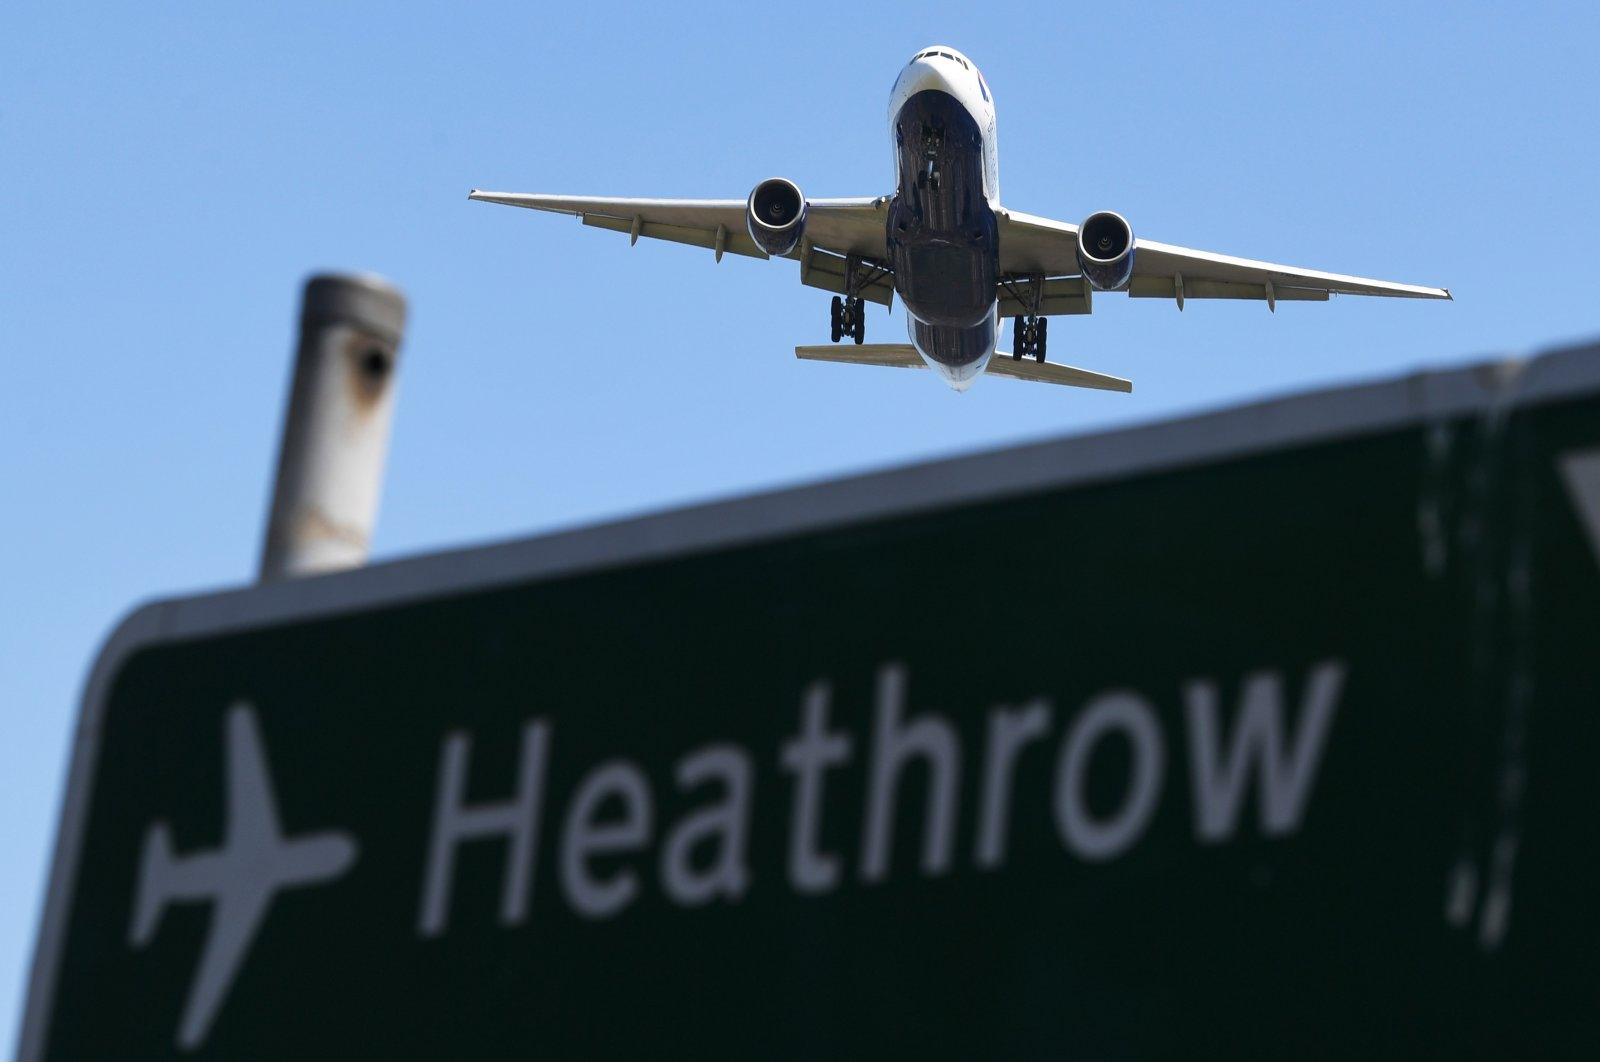 A plane passes a sign as it comes in to land at Heathrow Airport in Hounslow, Britain, June 25, 2018. (EPA Photo)